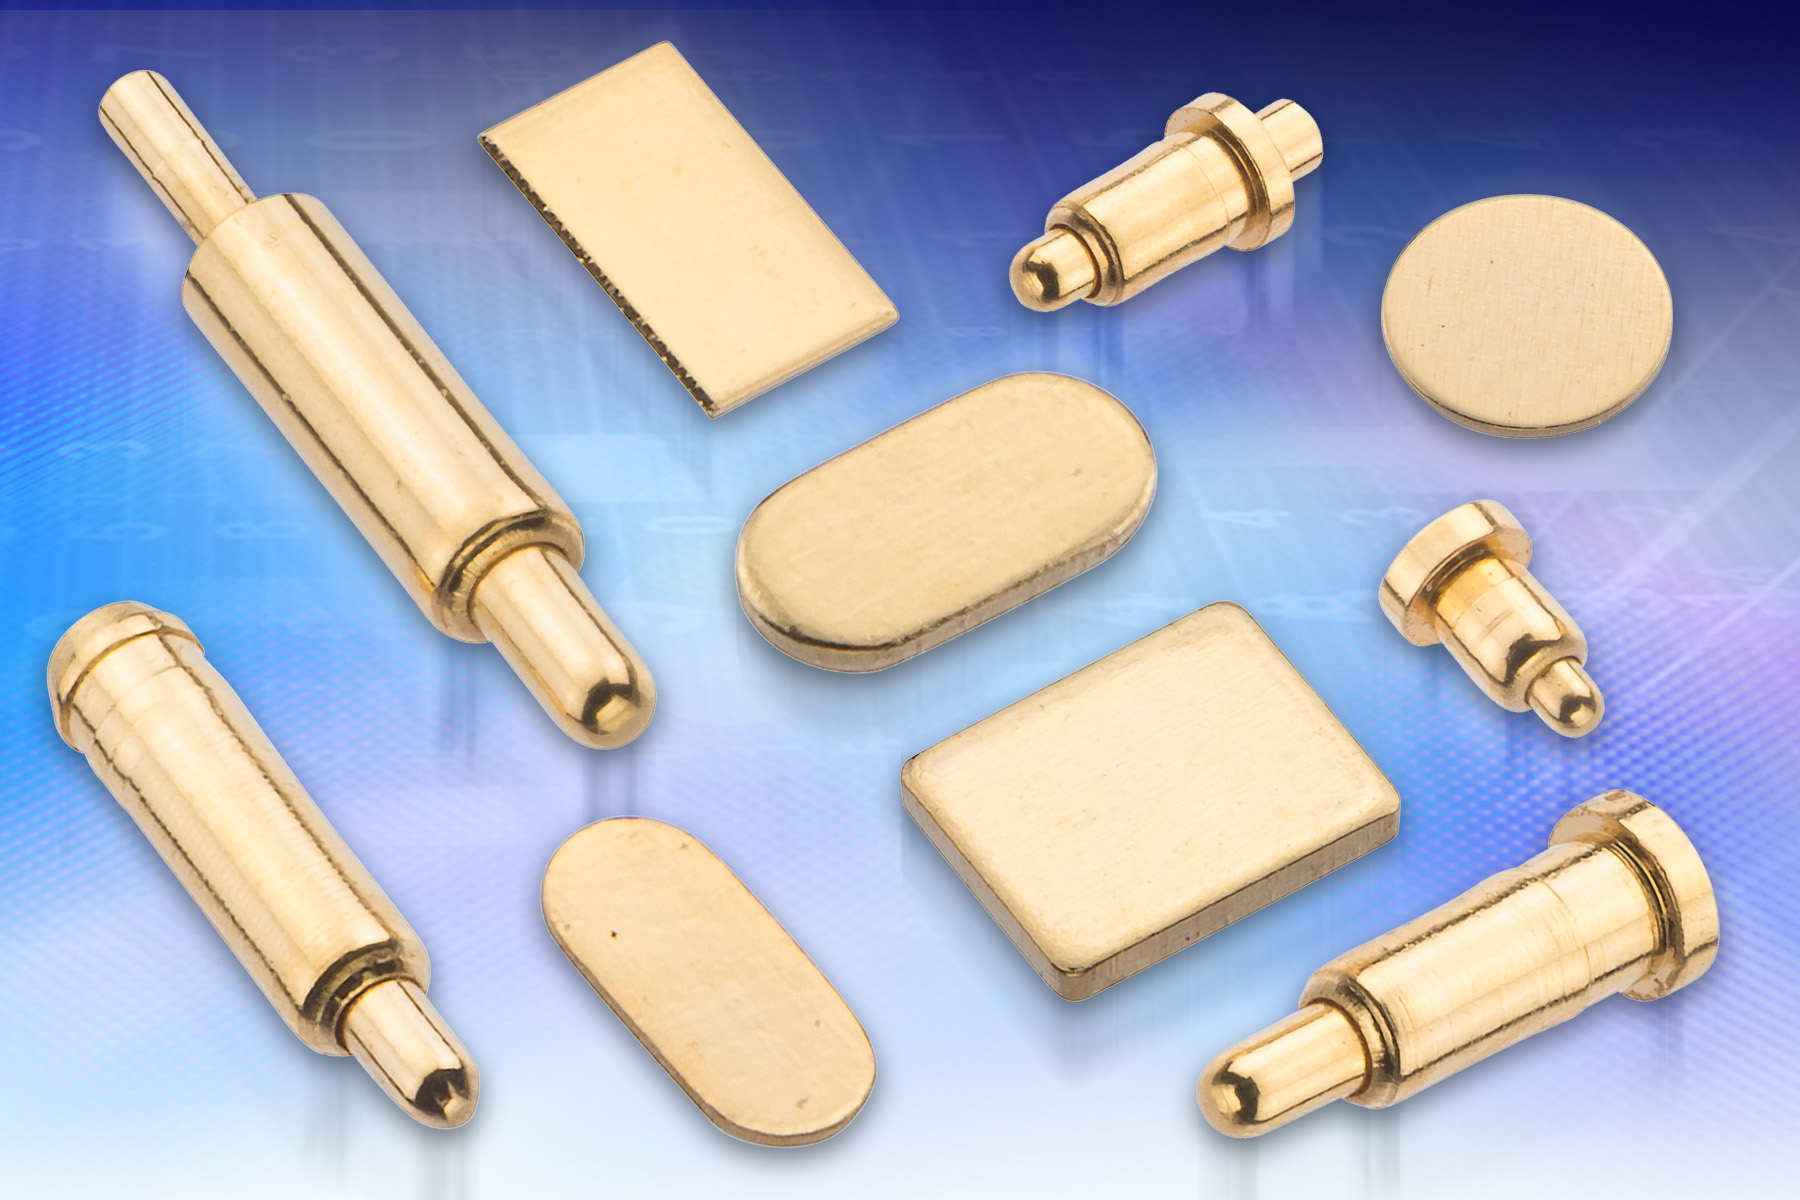 Harwin Pogo Pin contact and S70 SMT contact pads